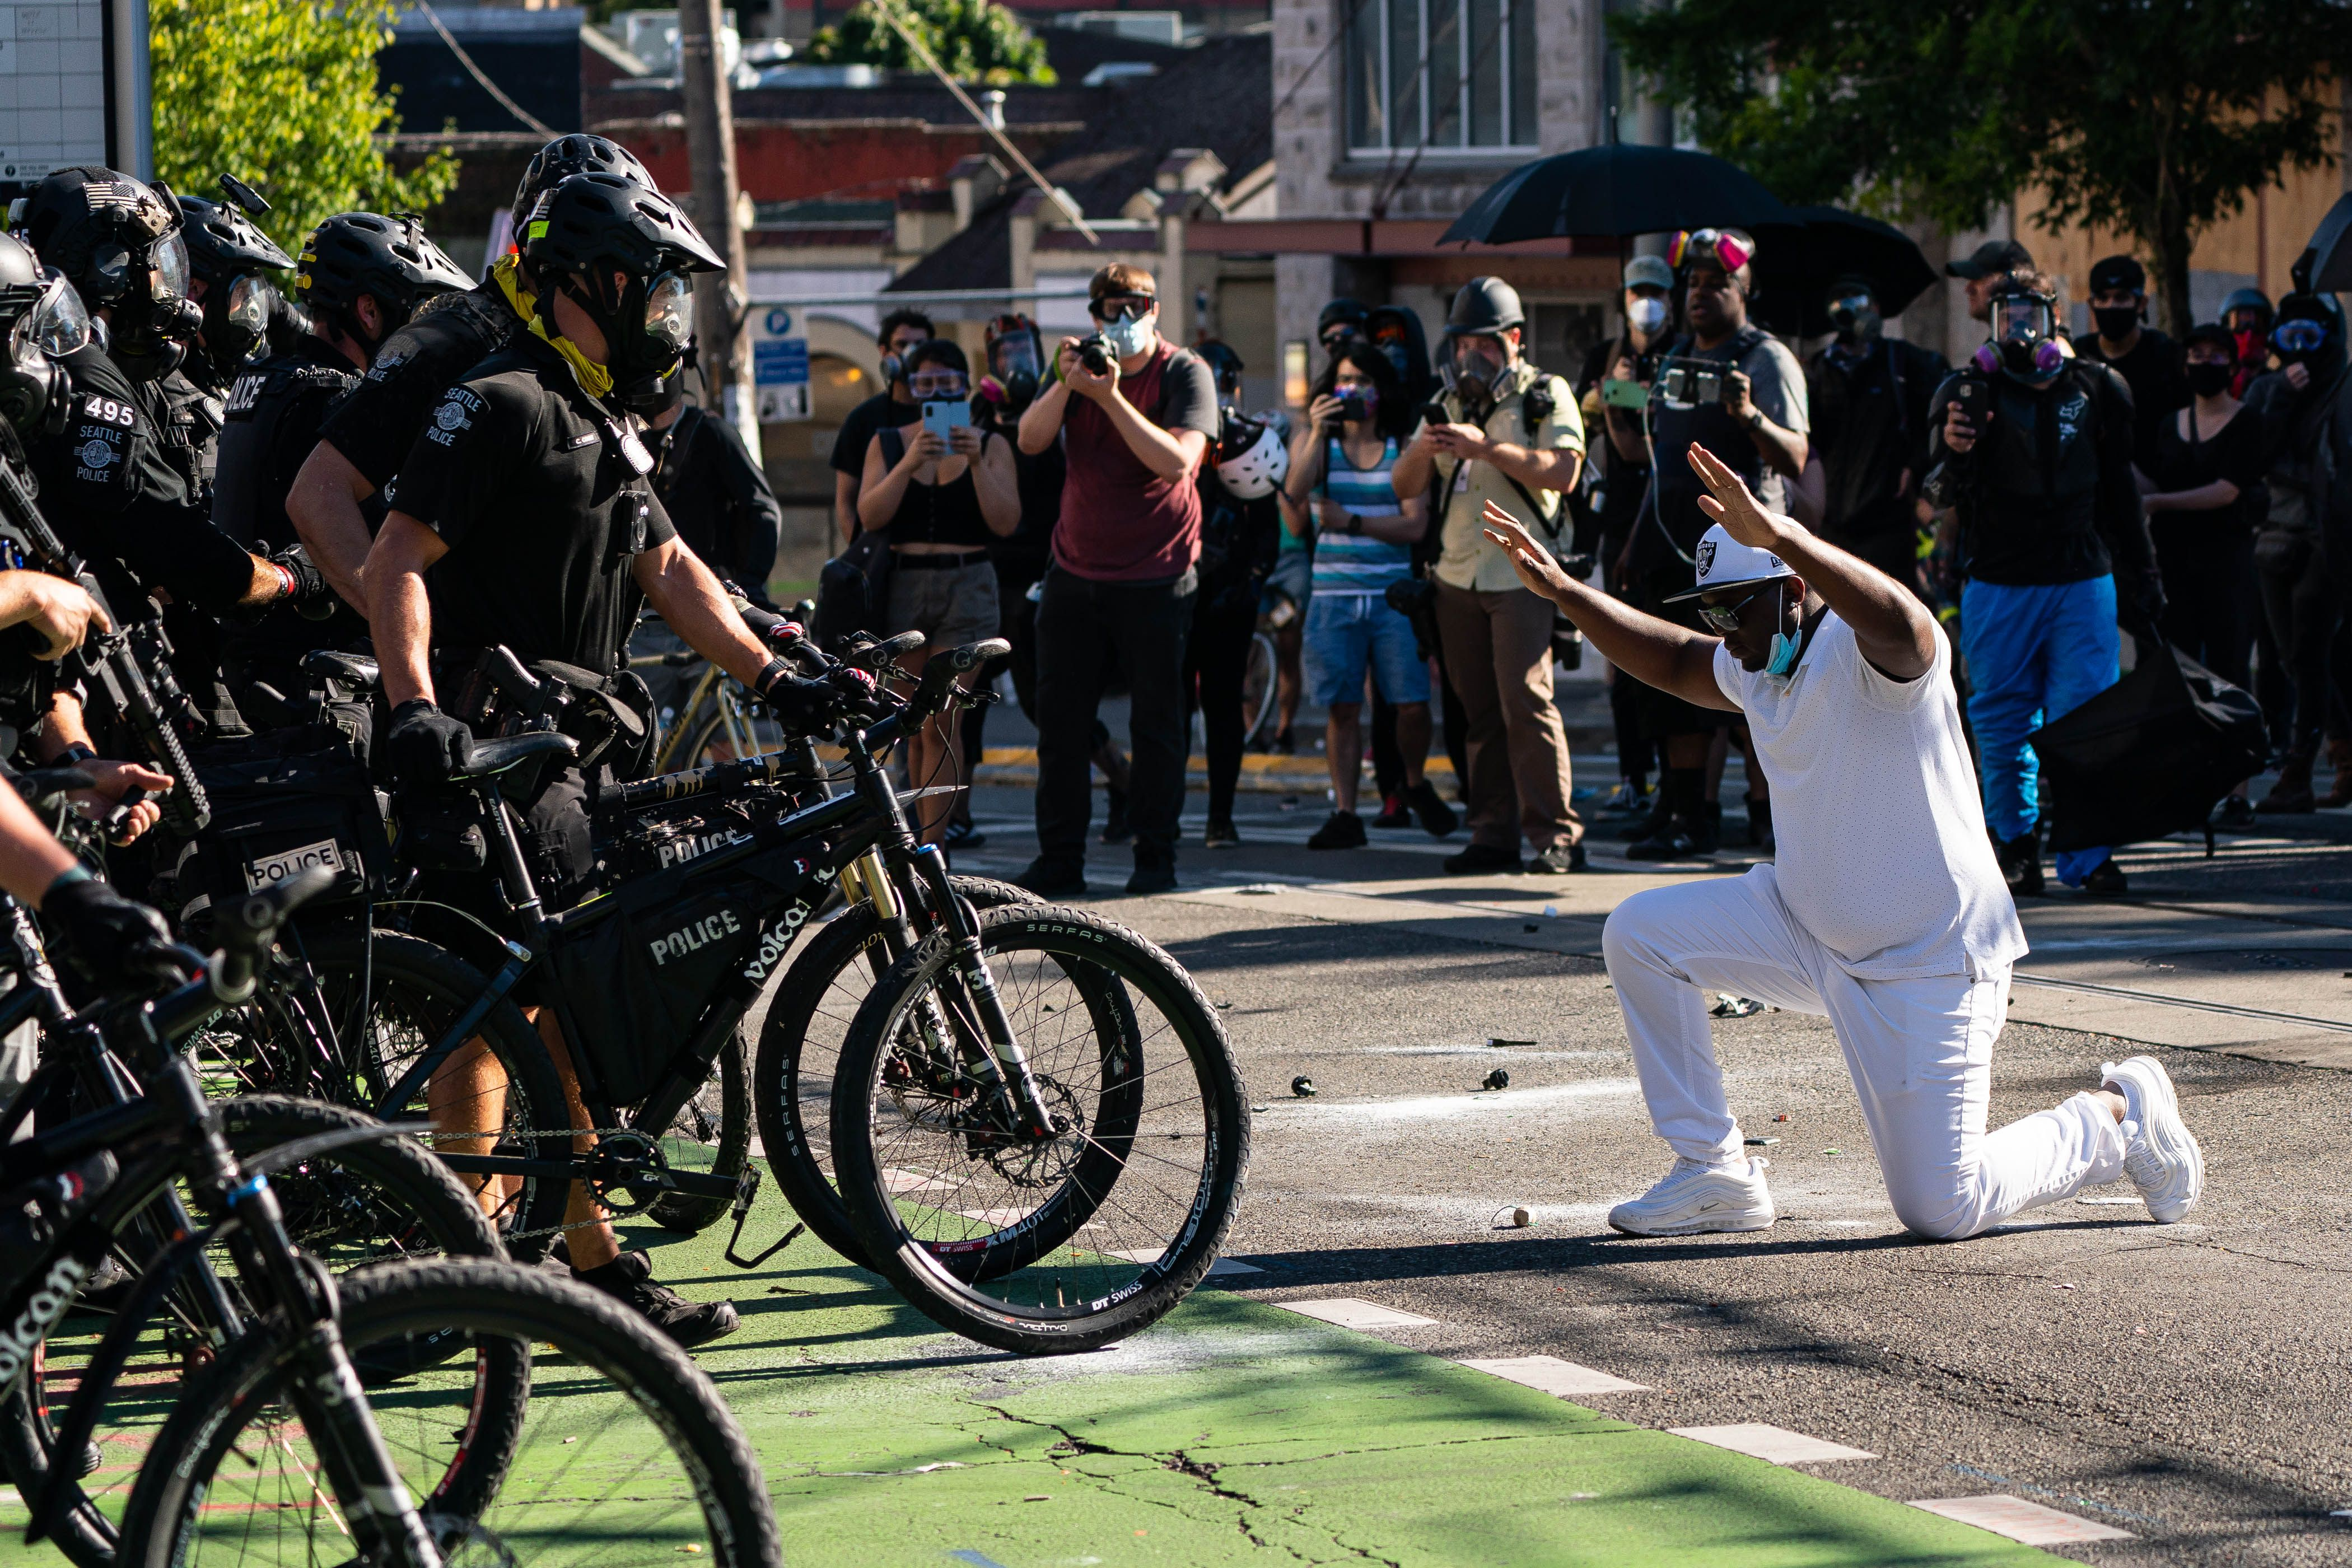 SEATTLE, WA - JULY 25: A demonstrator kneels in front of police during protests in Seattle on July 25, 2020 in Seattle, Washington. Police and demonstrators clash as protests continue in the city following reports that federal agents may have been sent to the city.   David Ryder/Getty Images/AFP